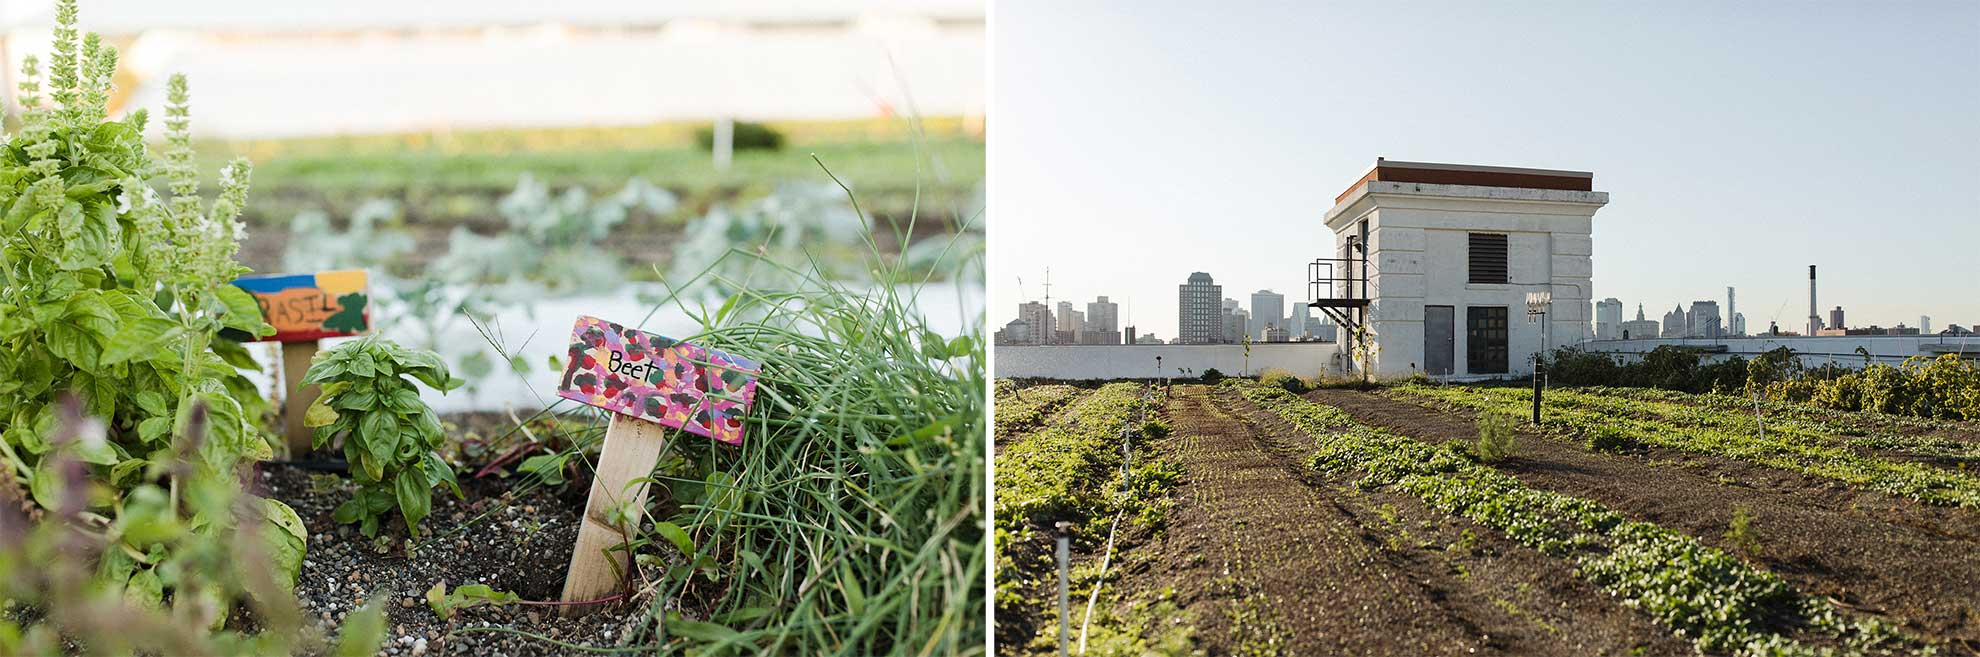 On the left, signs marking beet plants and basil plants. On the right, rows of seedlings in a rooftop garden.